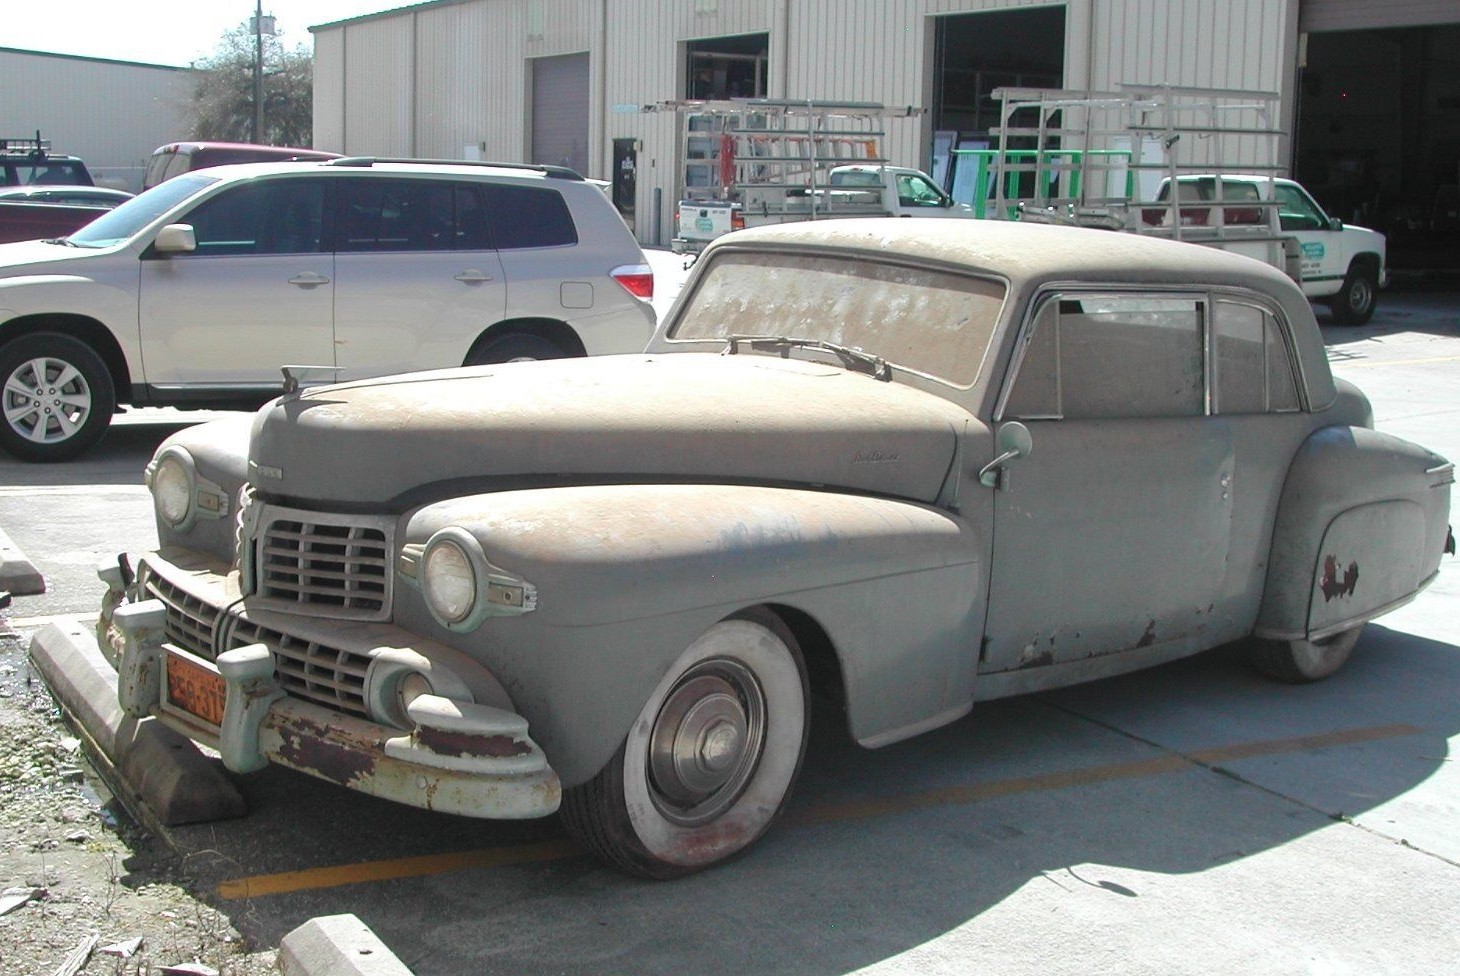 As The Er Says In Ebay Listing Every Car Has A Story This One Is No Diffe Although More Interesting Than Most Continental